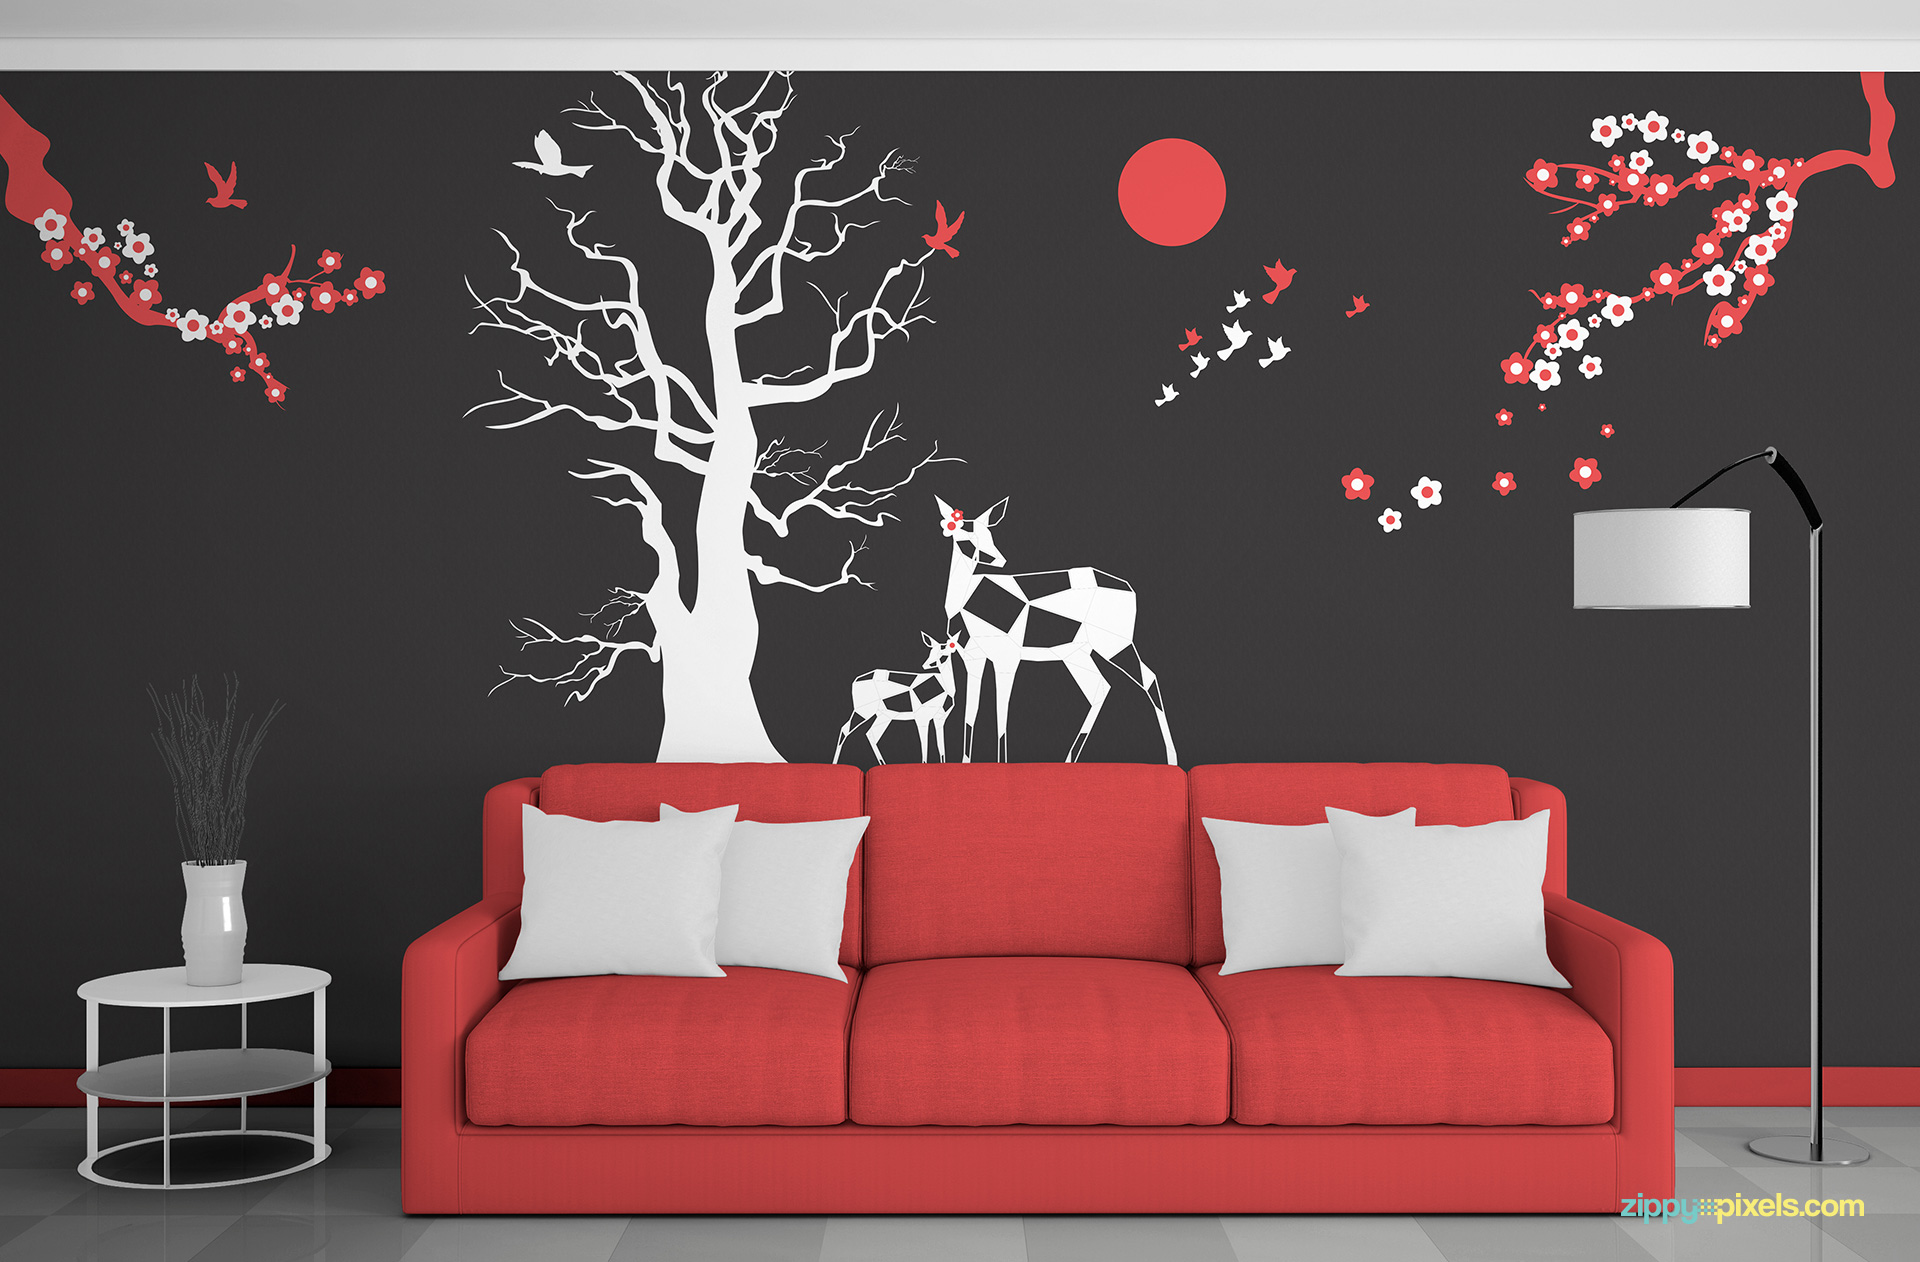 Editable Wall Art Mockup In Red And White Color Scheme